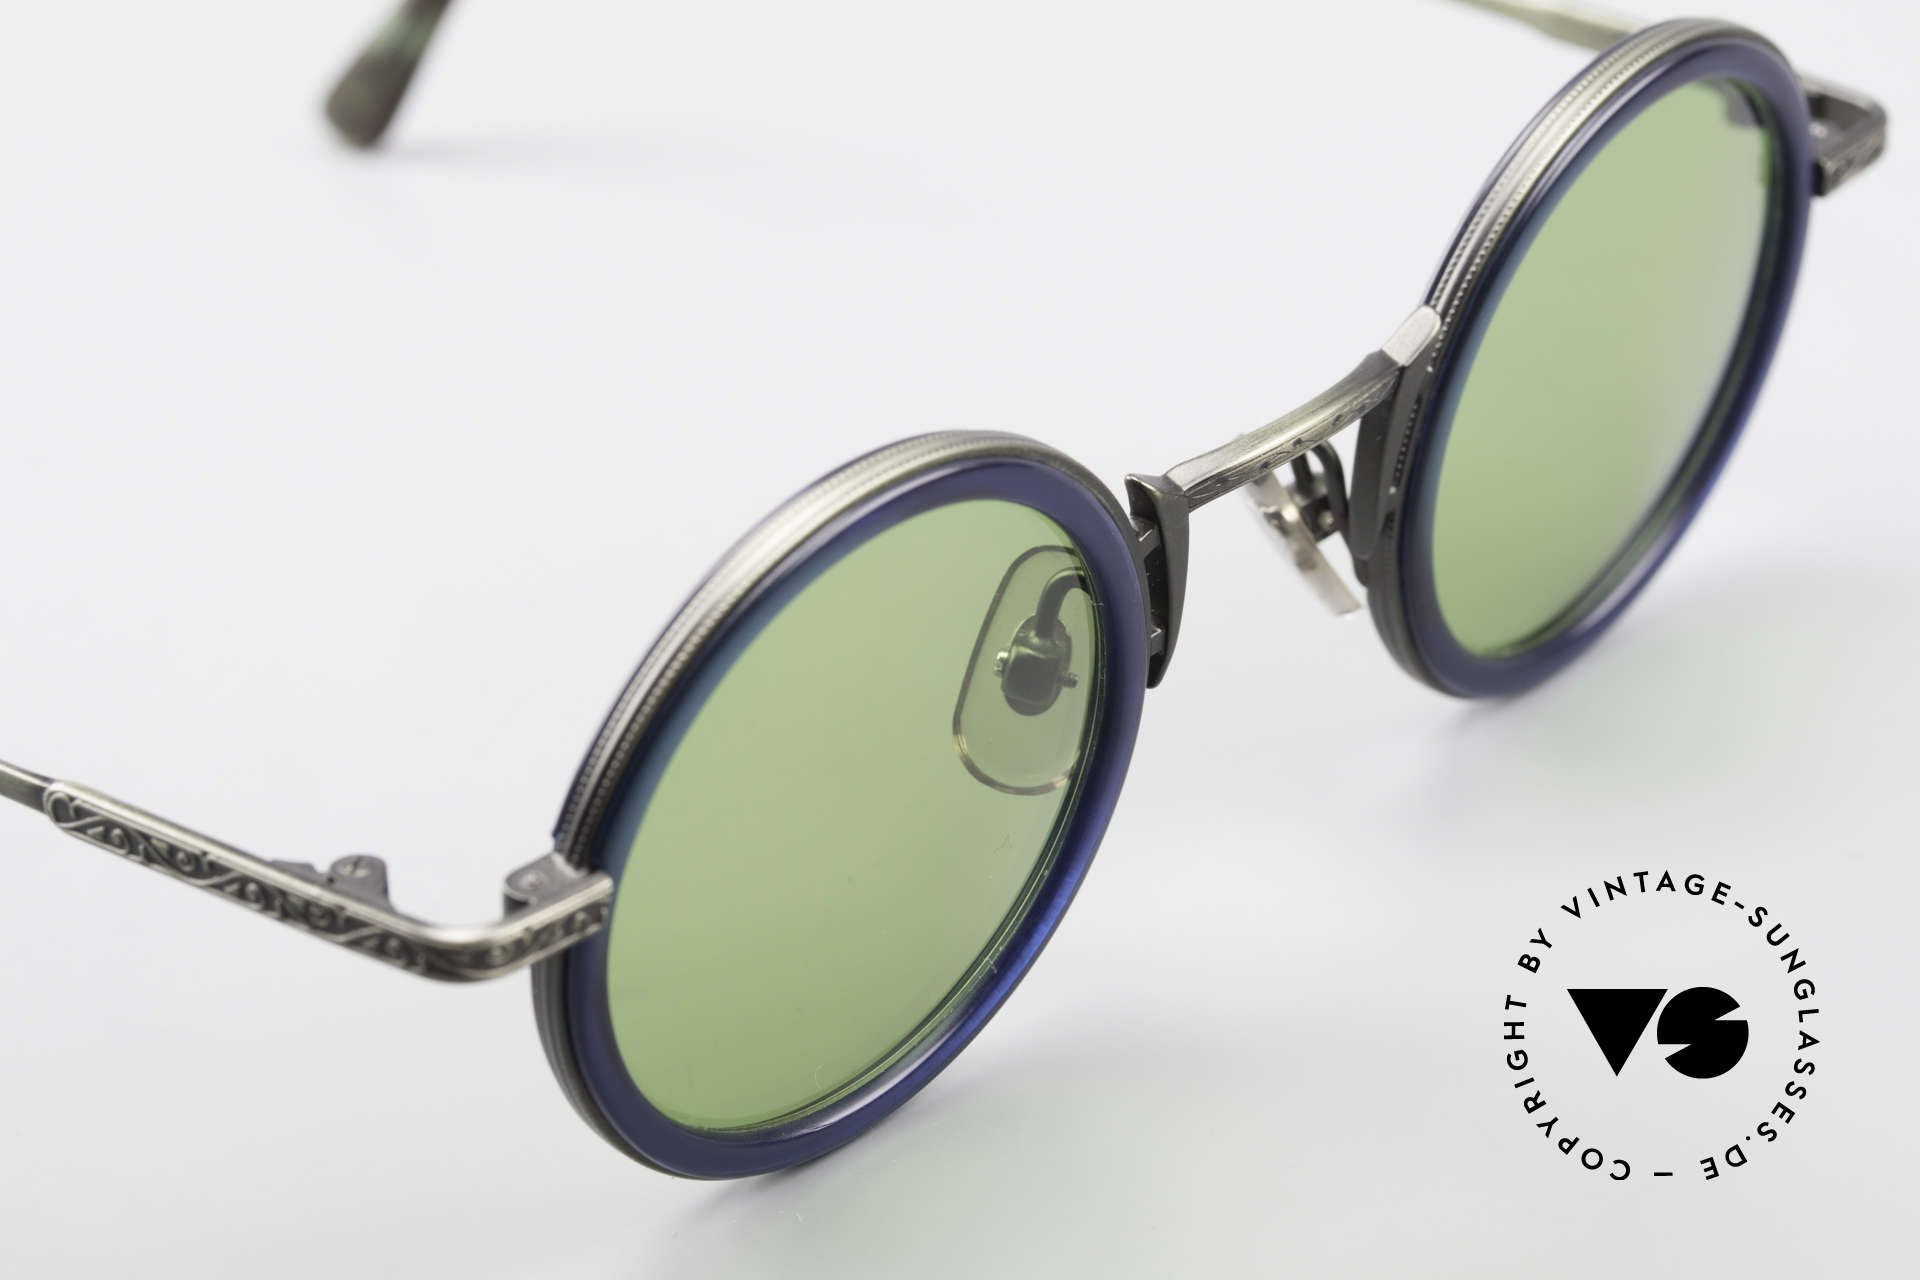 Freudenhaus Domo Round Designer Sunglasses, unworn (like all our rare vintage designer sunglasses), Made for Men